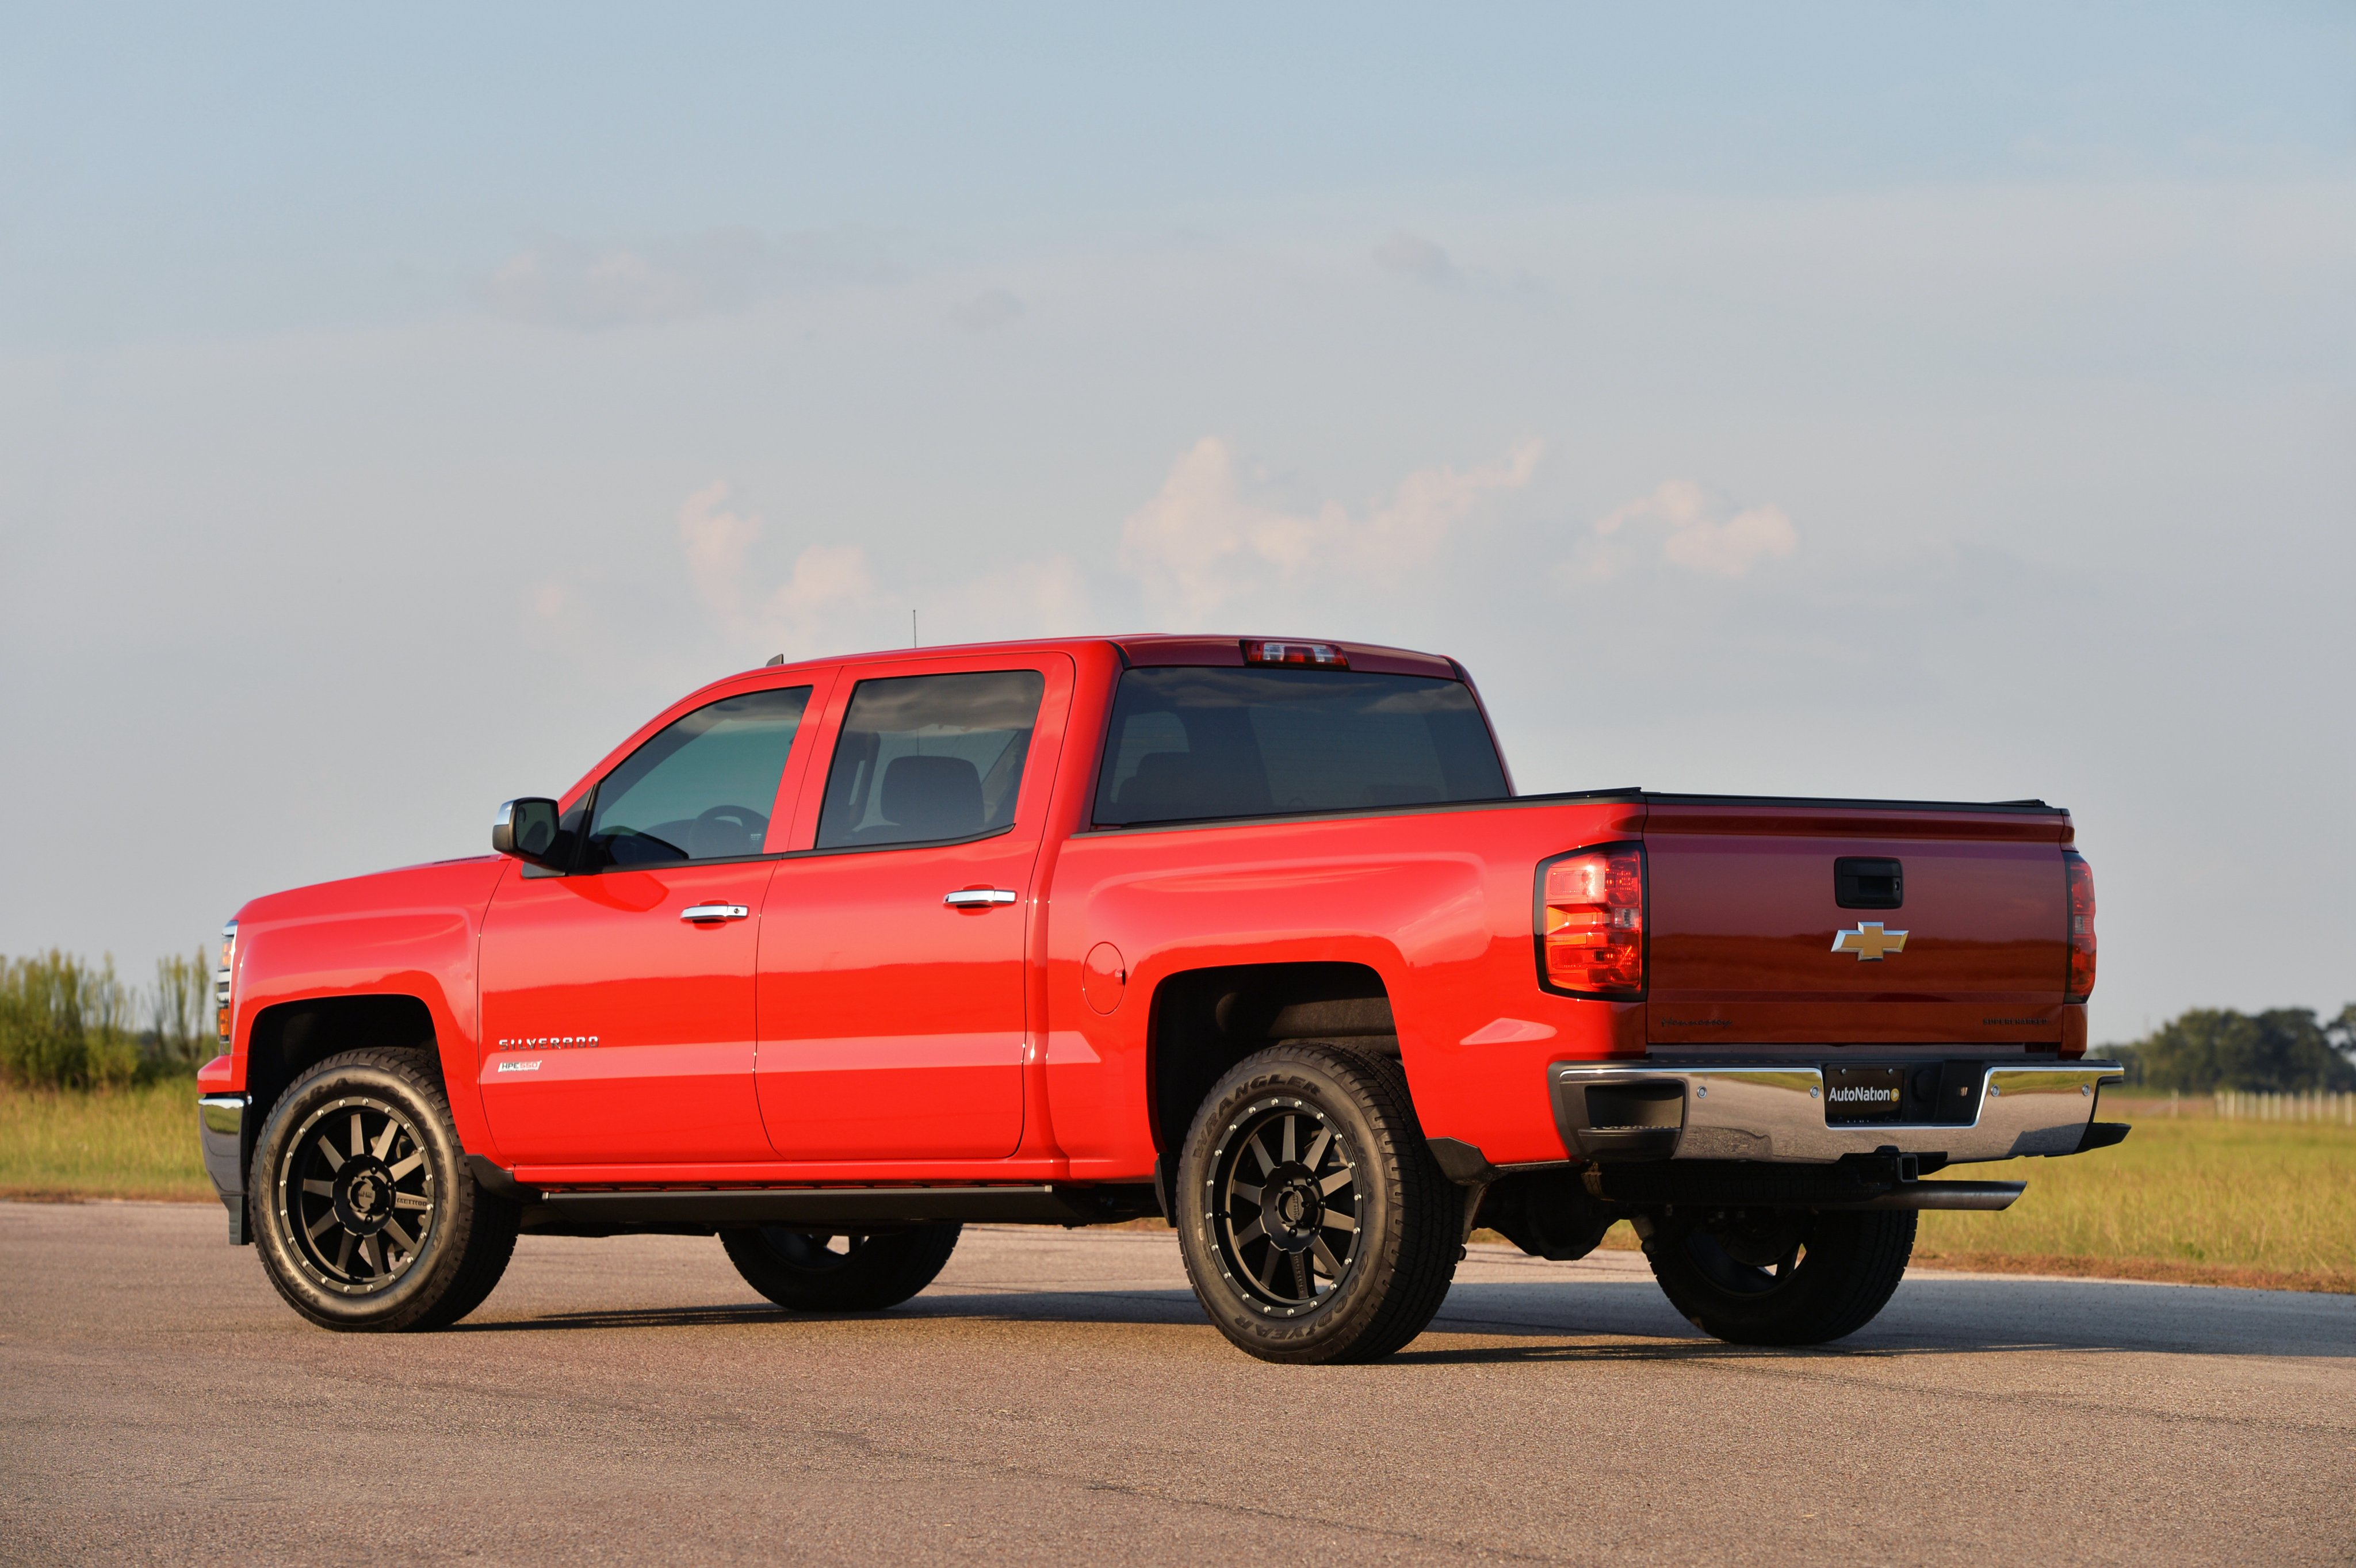 2015 hennessey chevrolet silverado z71 hpe550 pickup muscle tuning wallpaper 4096x2726 461861 wallpaperup